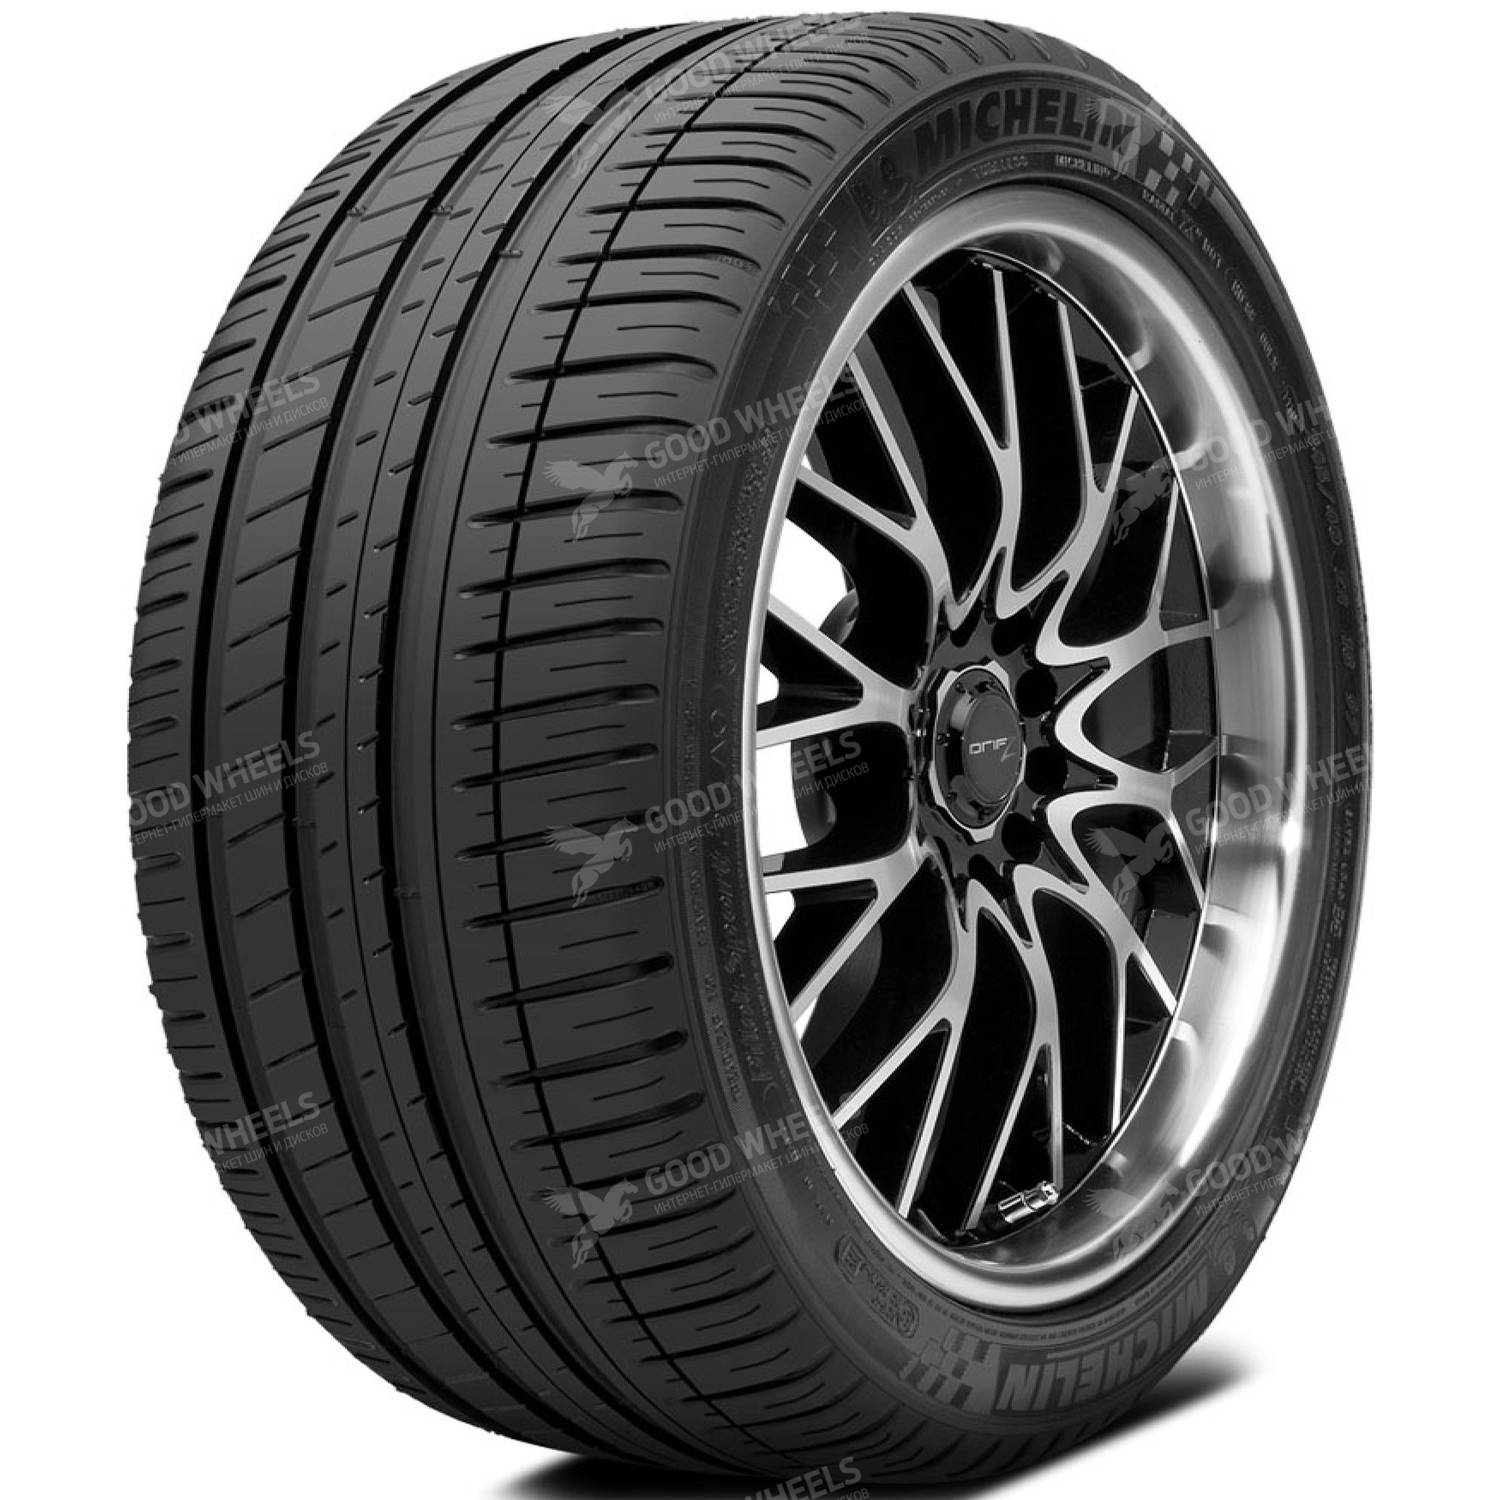 Michelin Pilot Sport 3 (PS3) 255/40 R20 101Y